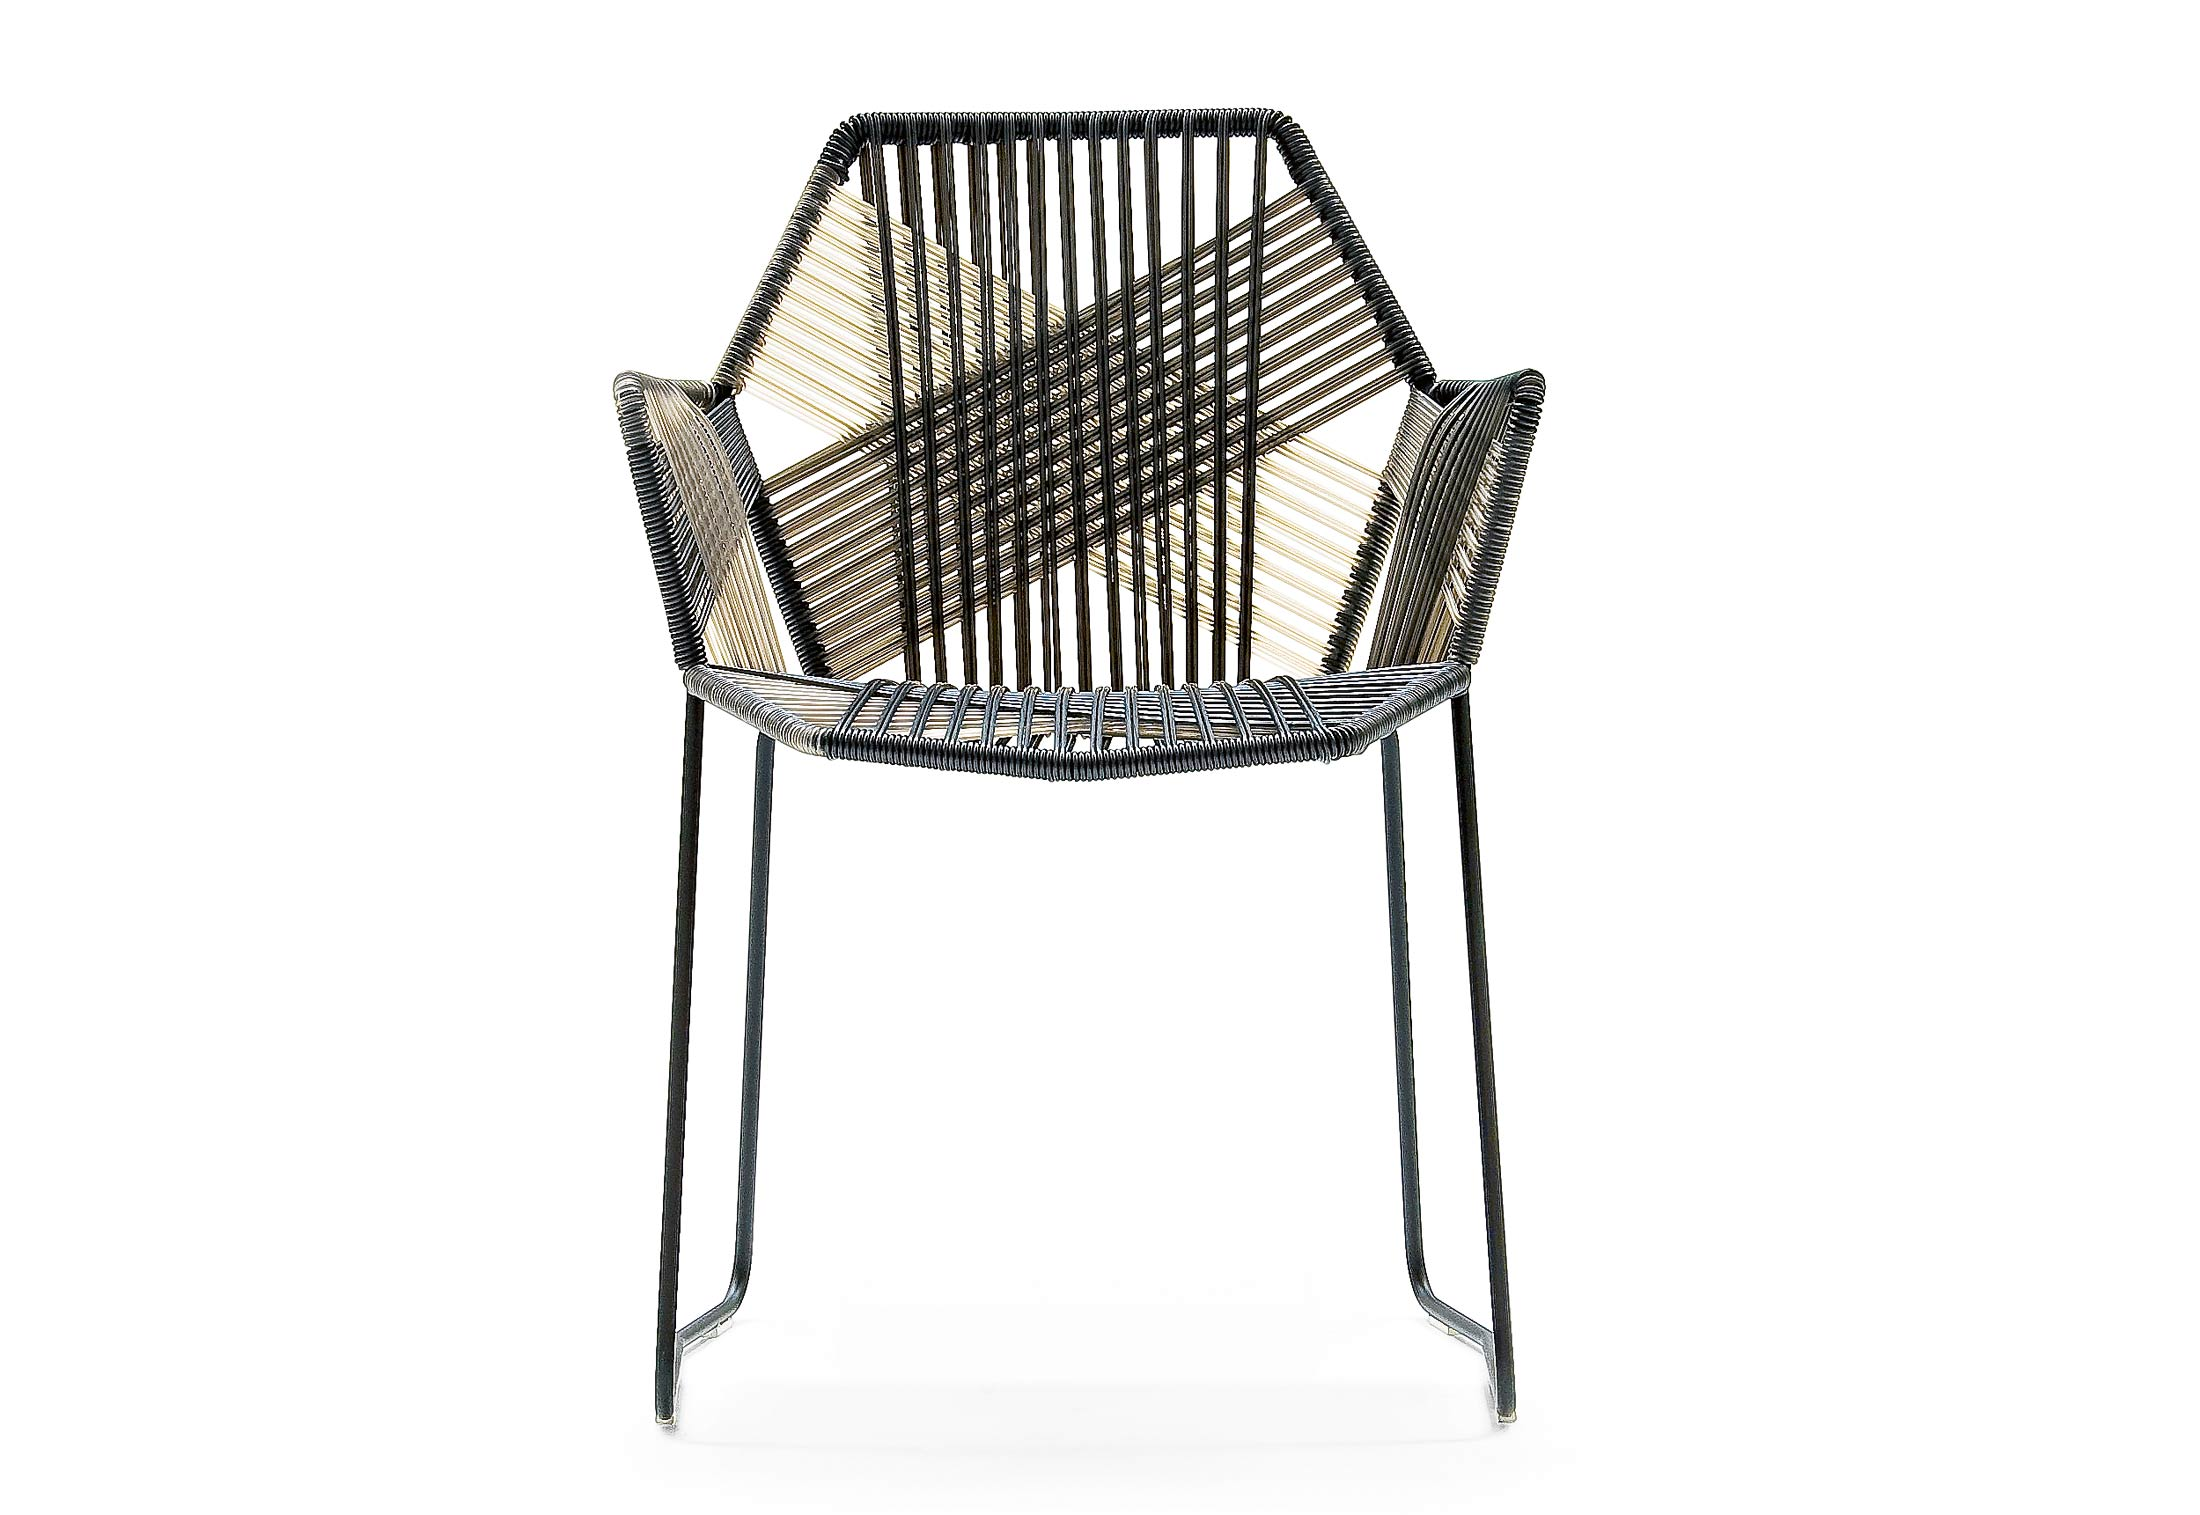 Exceptionnel Tropicalia Chair With Armrests · Tropicalia Chair With Armrests ...